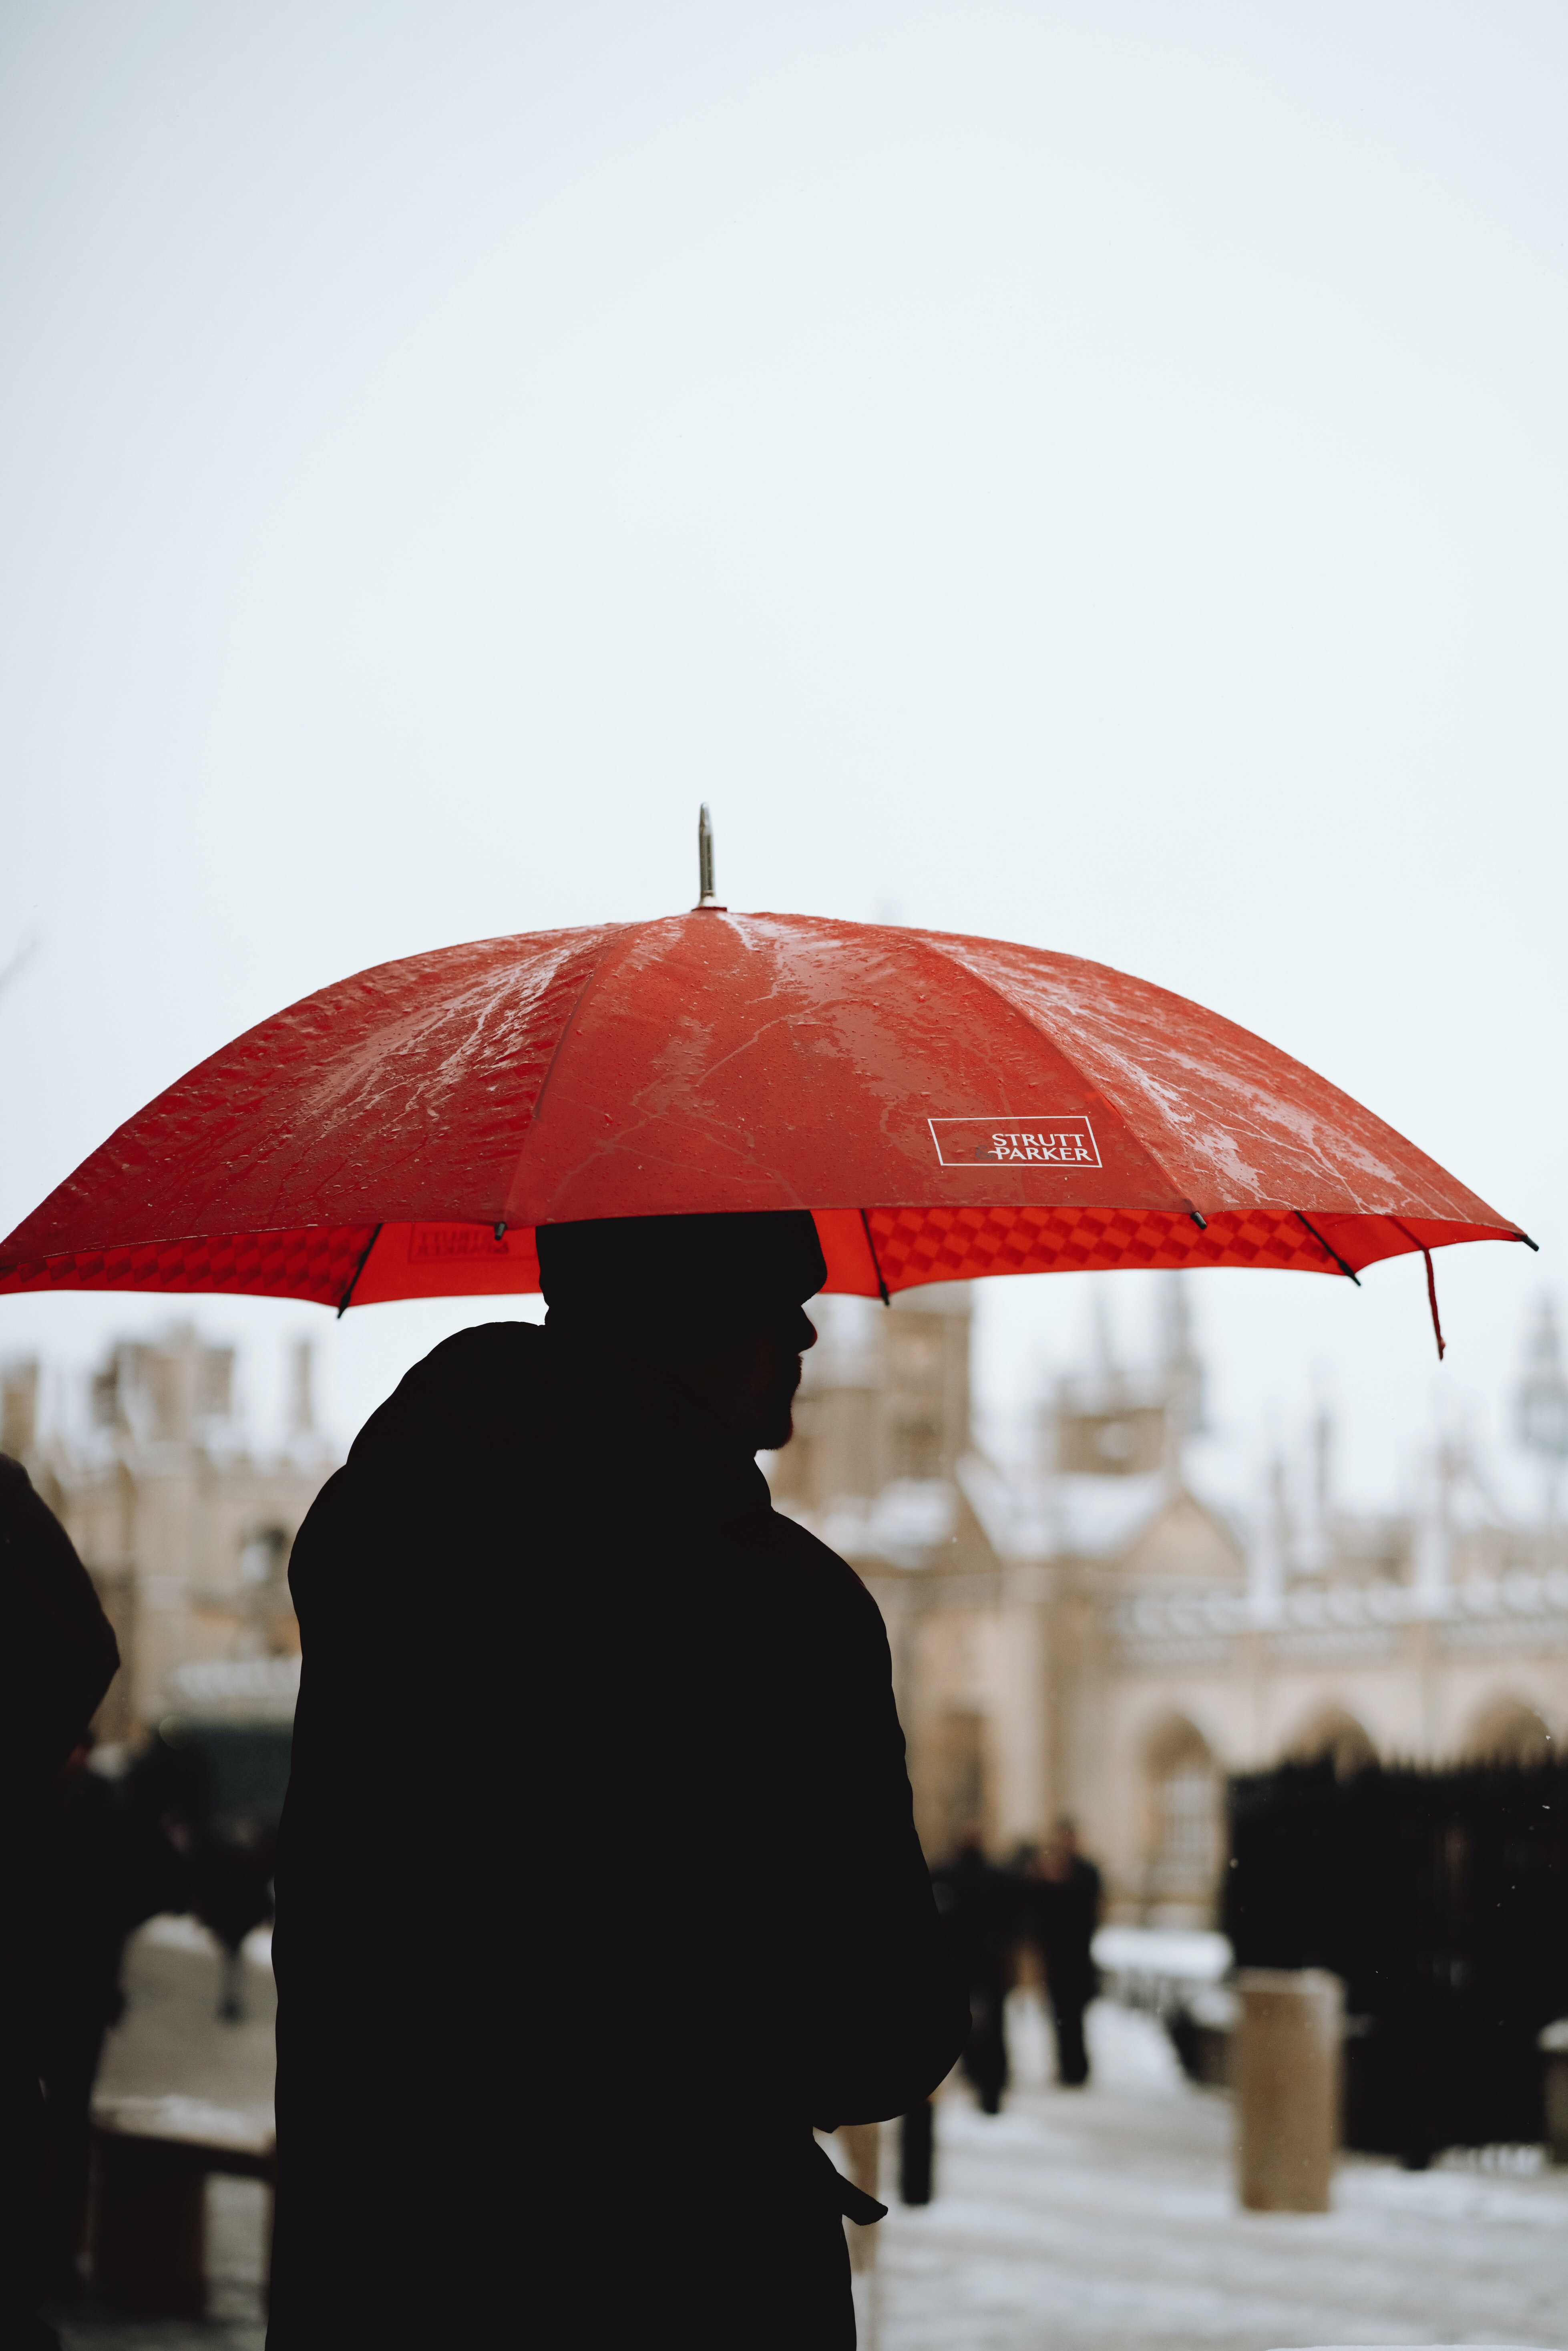 silhouette of person using umbrella at daytime photography